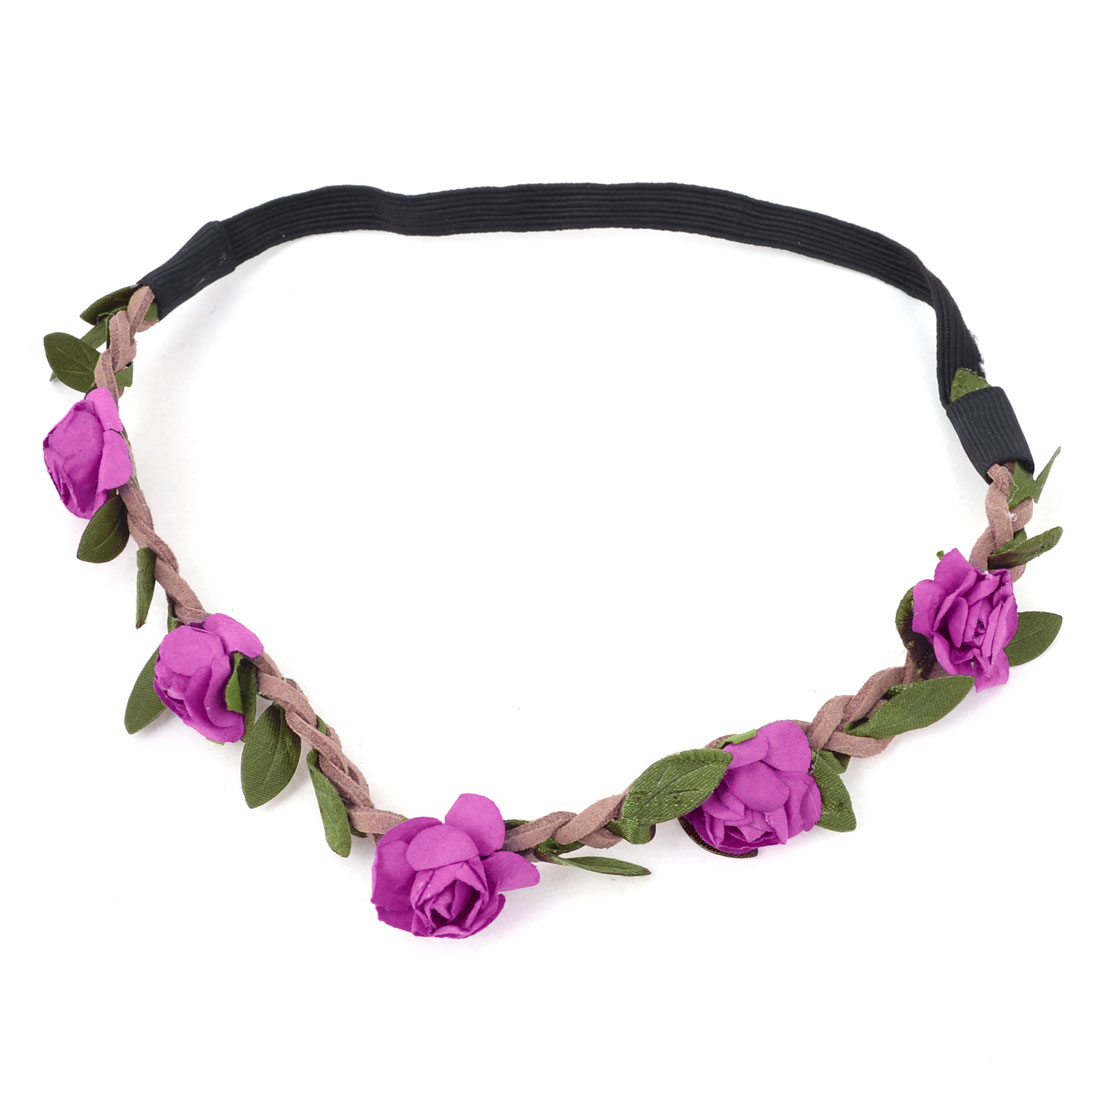 Ladies Hairstyle Fuchsia Flower Accent Elastic Fiber Braided Headwear Headband